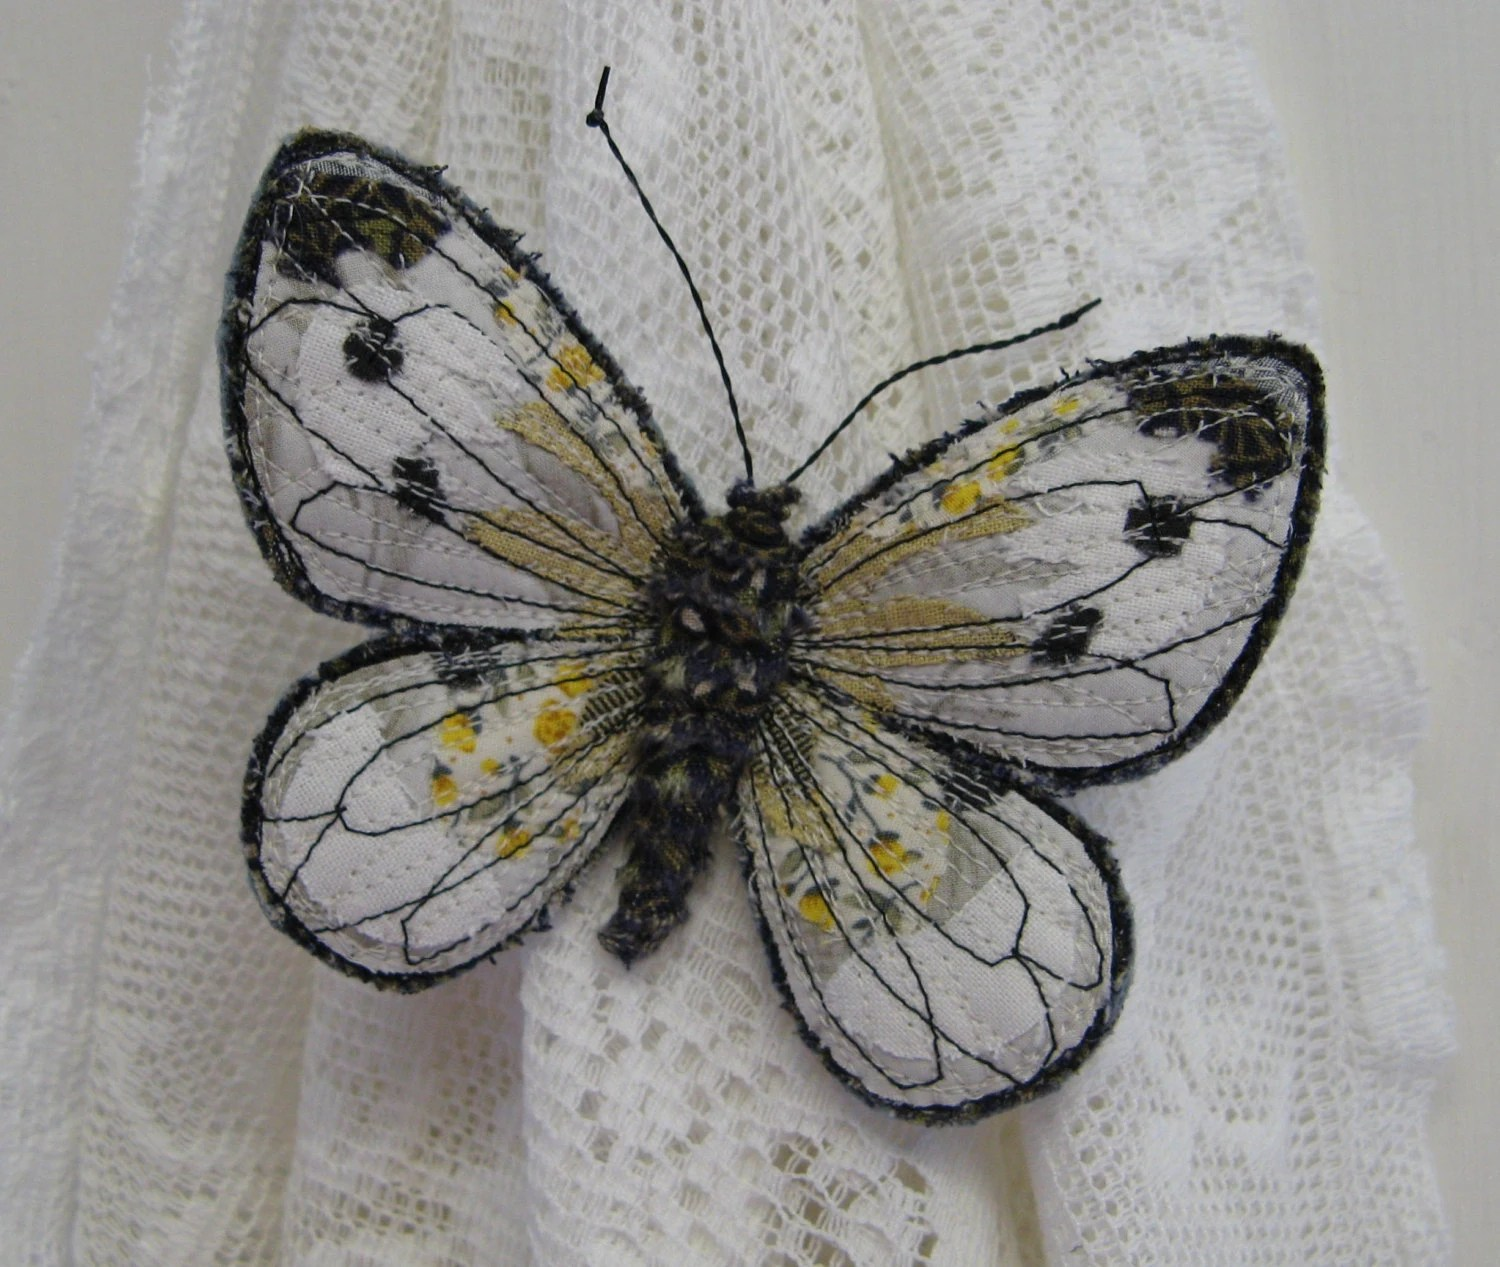 Embroidered butterfly brooch, 'Small White', textile art, soft sculpture, cottage chic